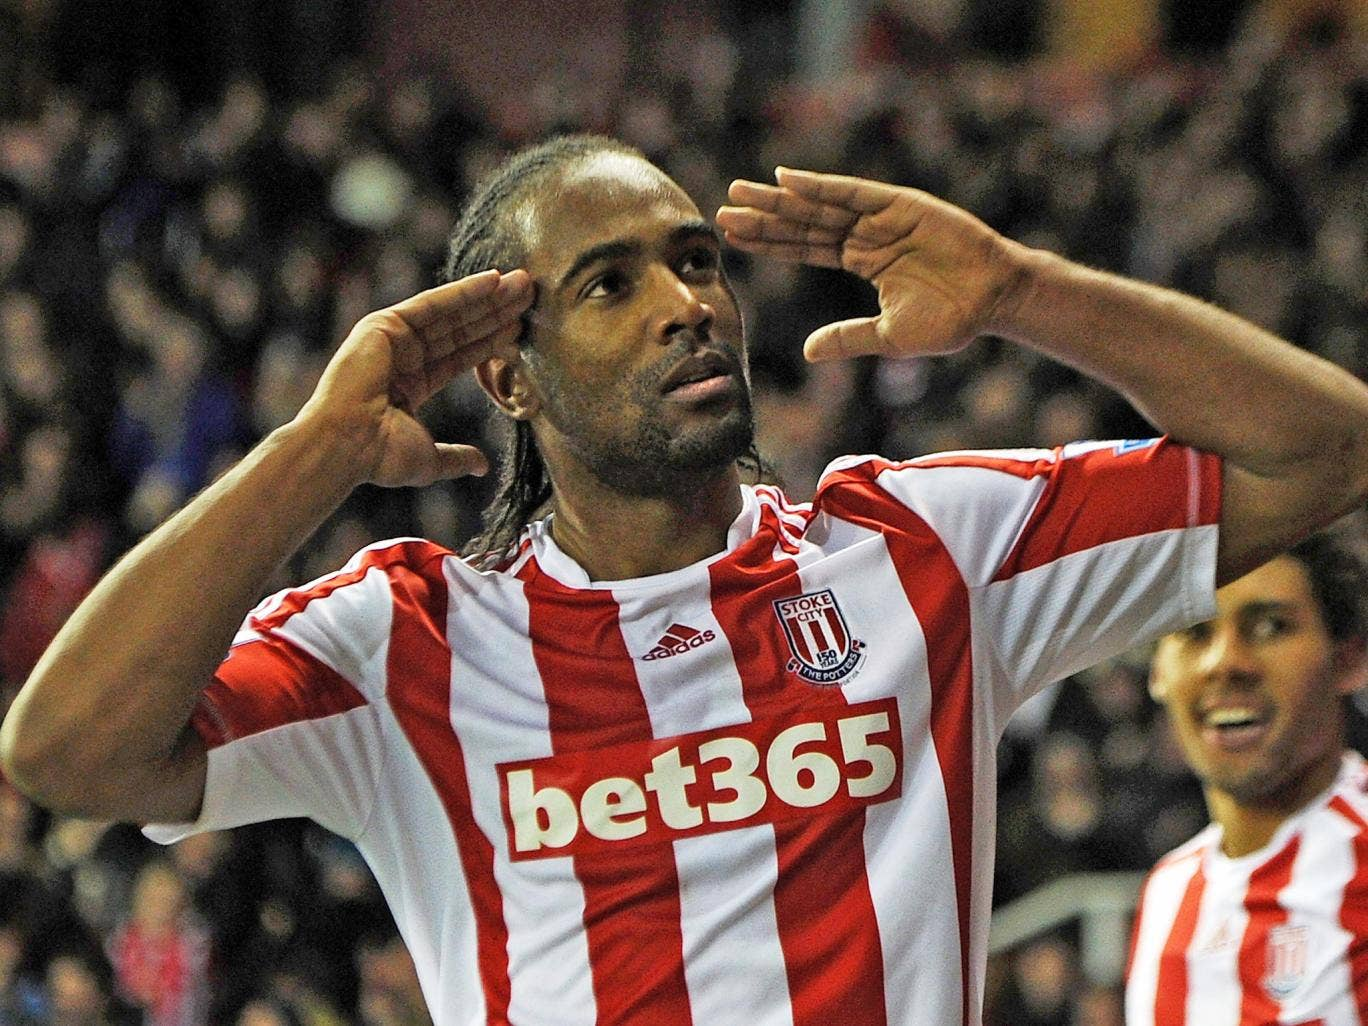 Cameron Jerome is willing to put aside personal disappointment if his coming off the bench helps Stoke City complete an unbeaten year at the Britannia Stadium